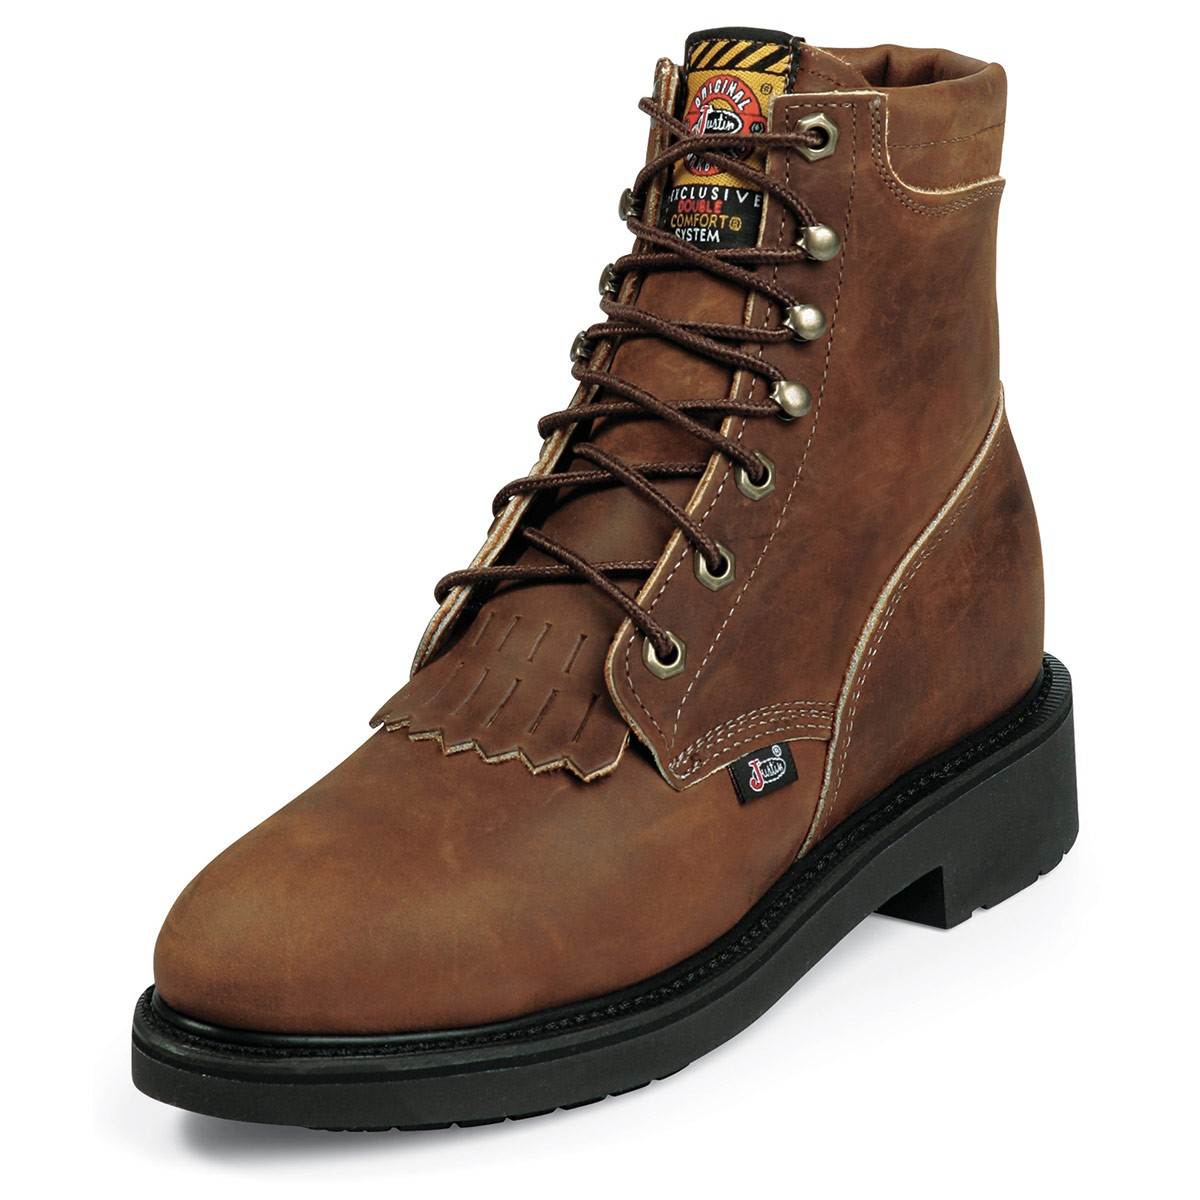 work boots for women womenu0027s justin workboots - 6 inch - lace-r - steel toe - eh - aged AOEPYCW